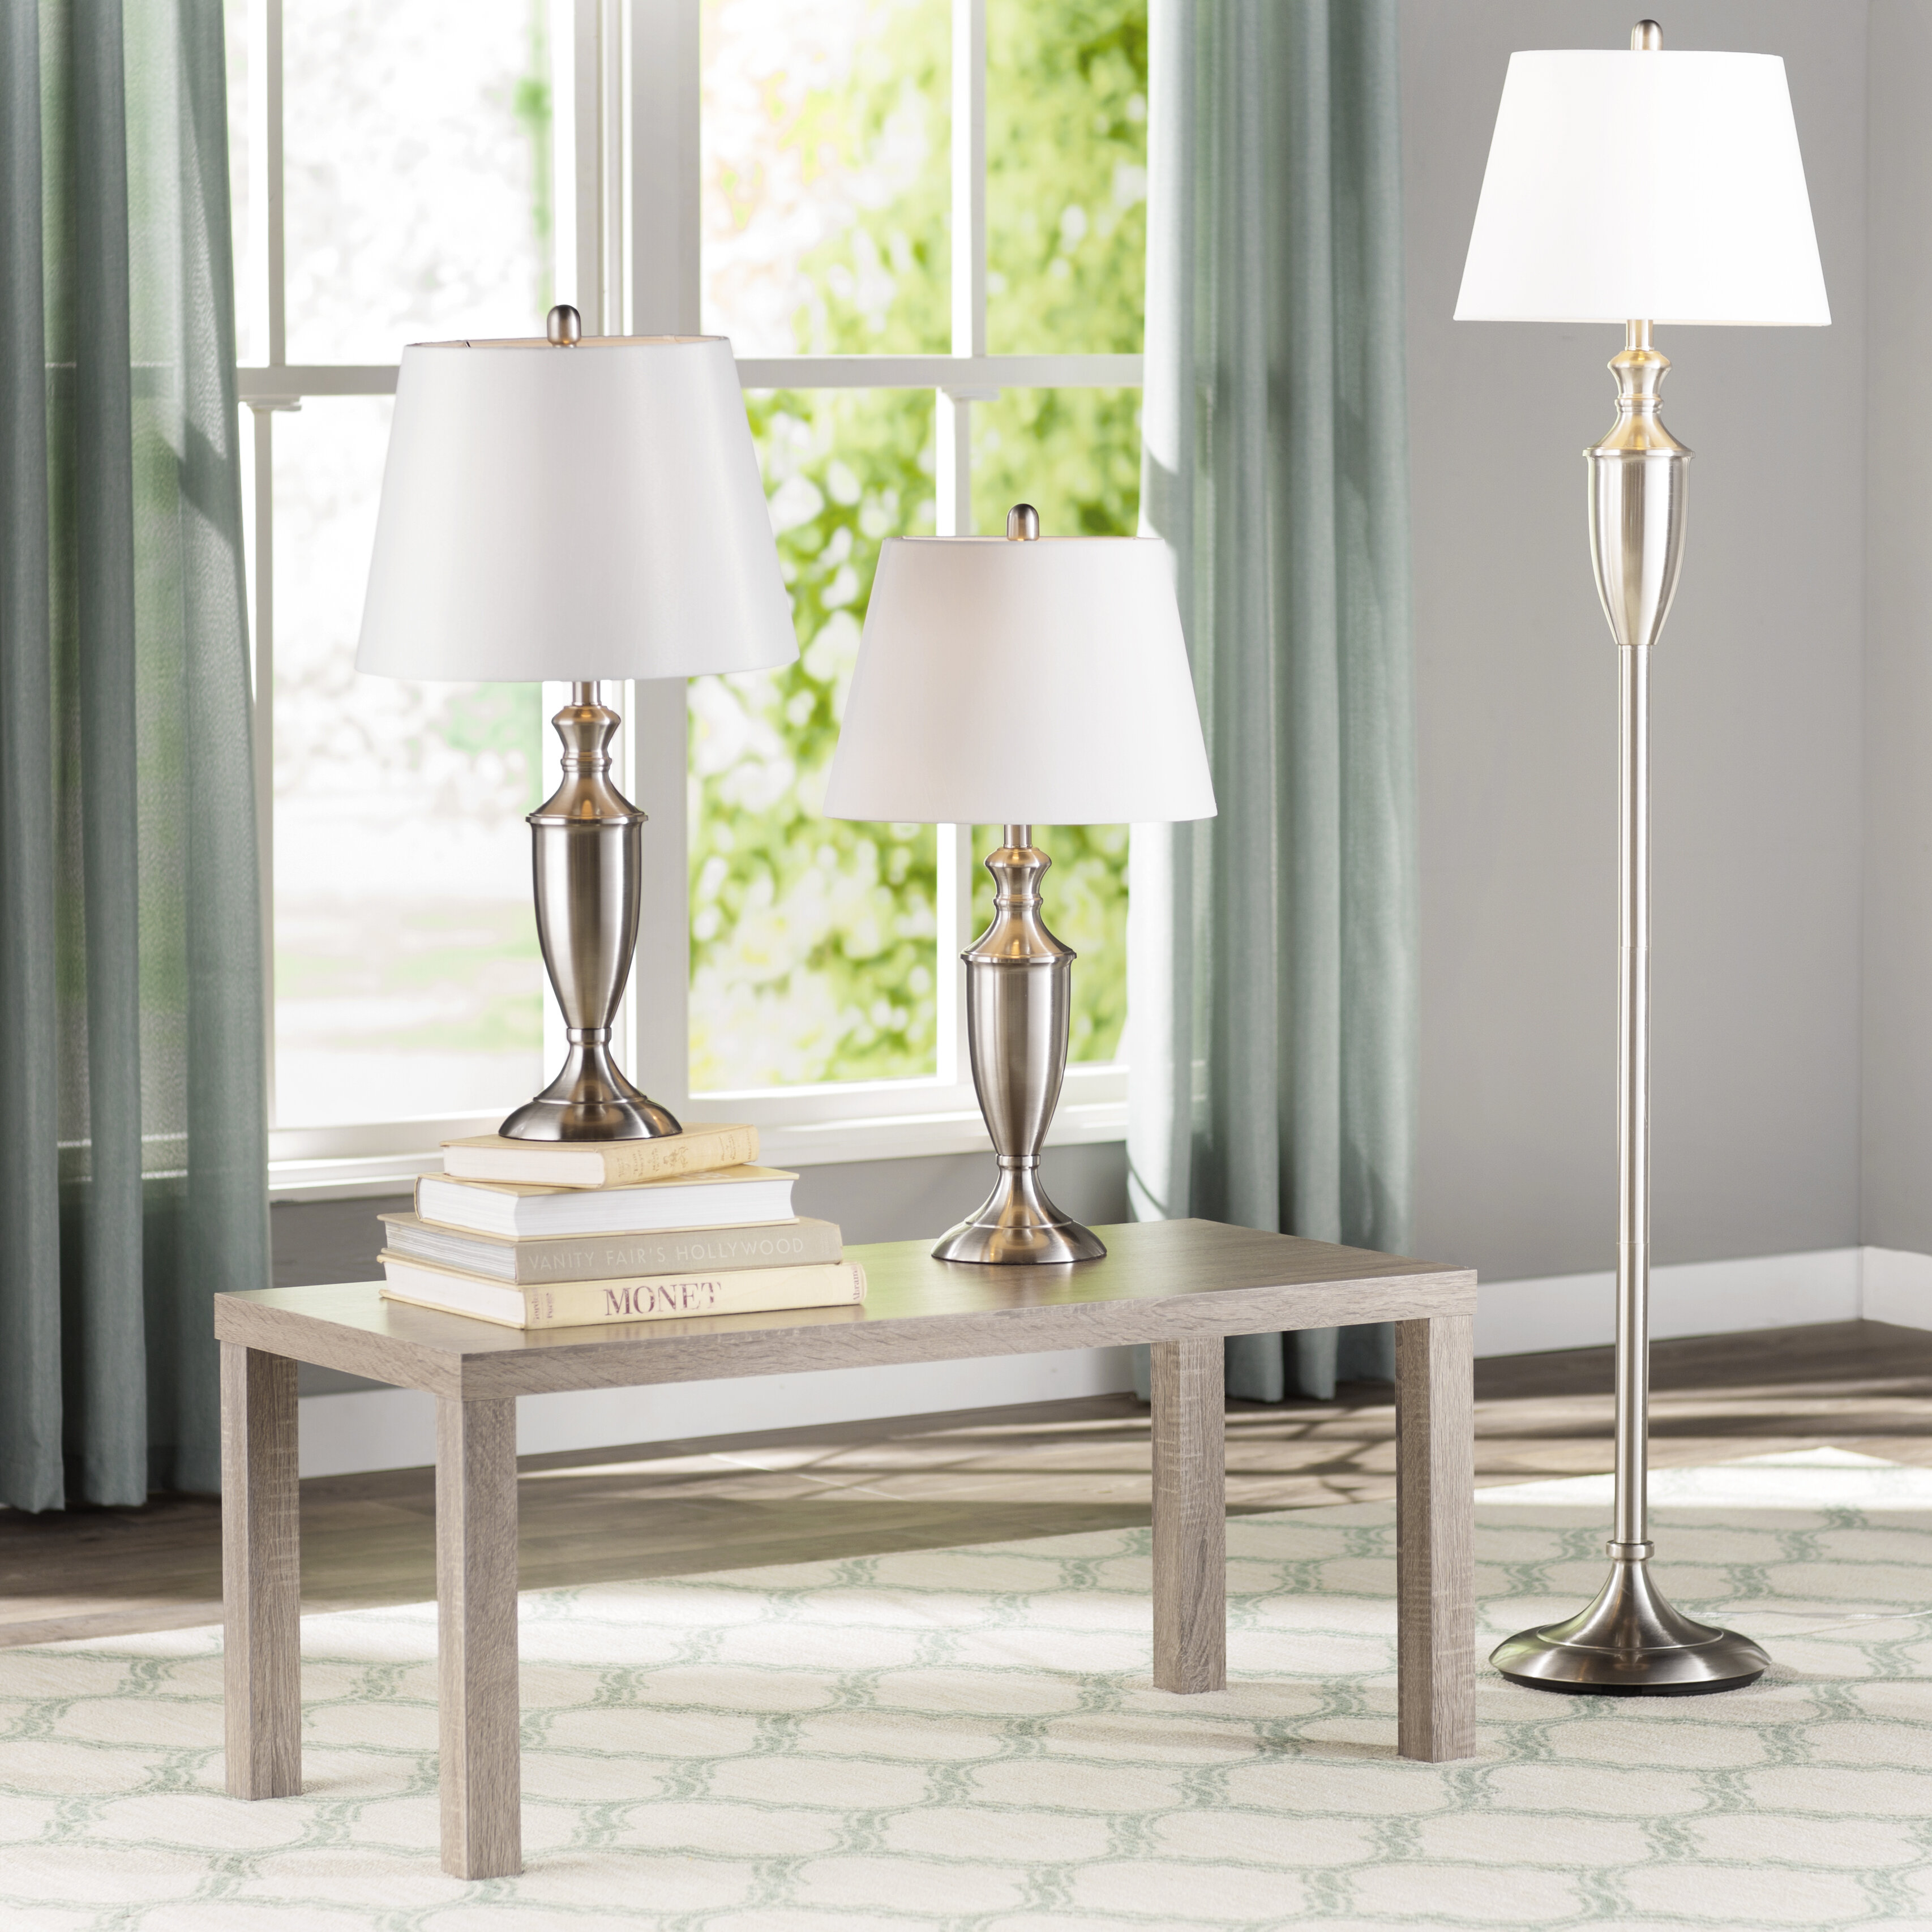 Andover mills fulkerson 3 piece table and floor lamp set reviews wayfair